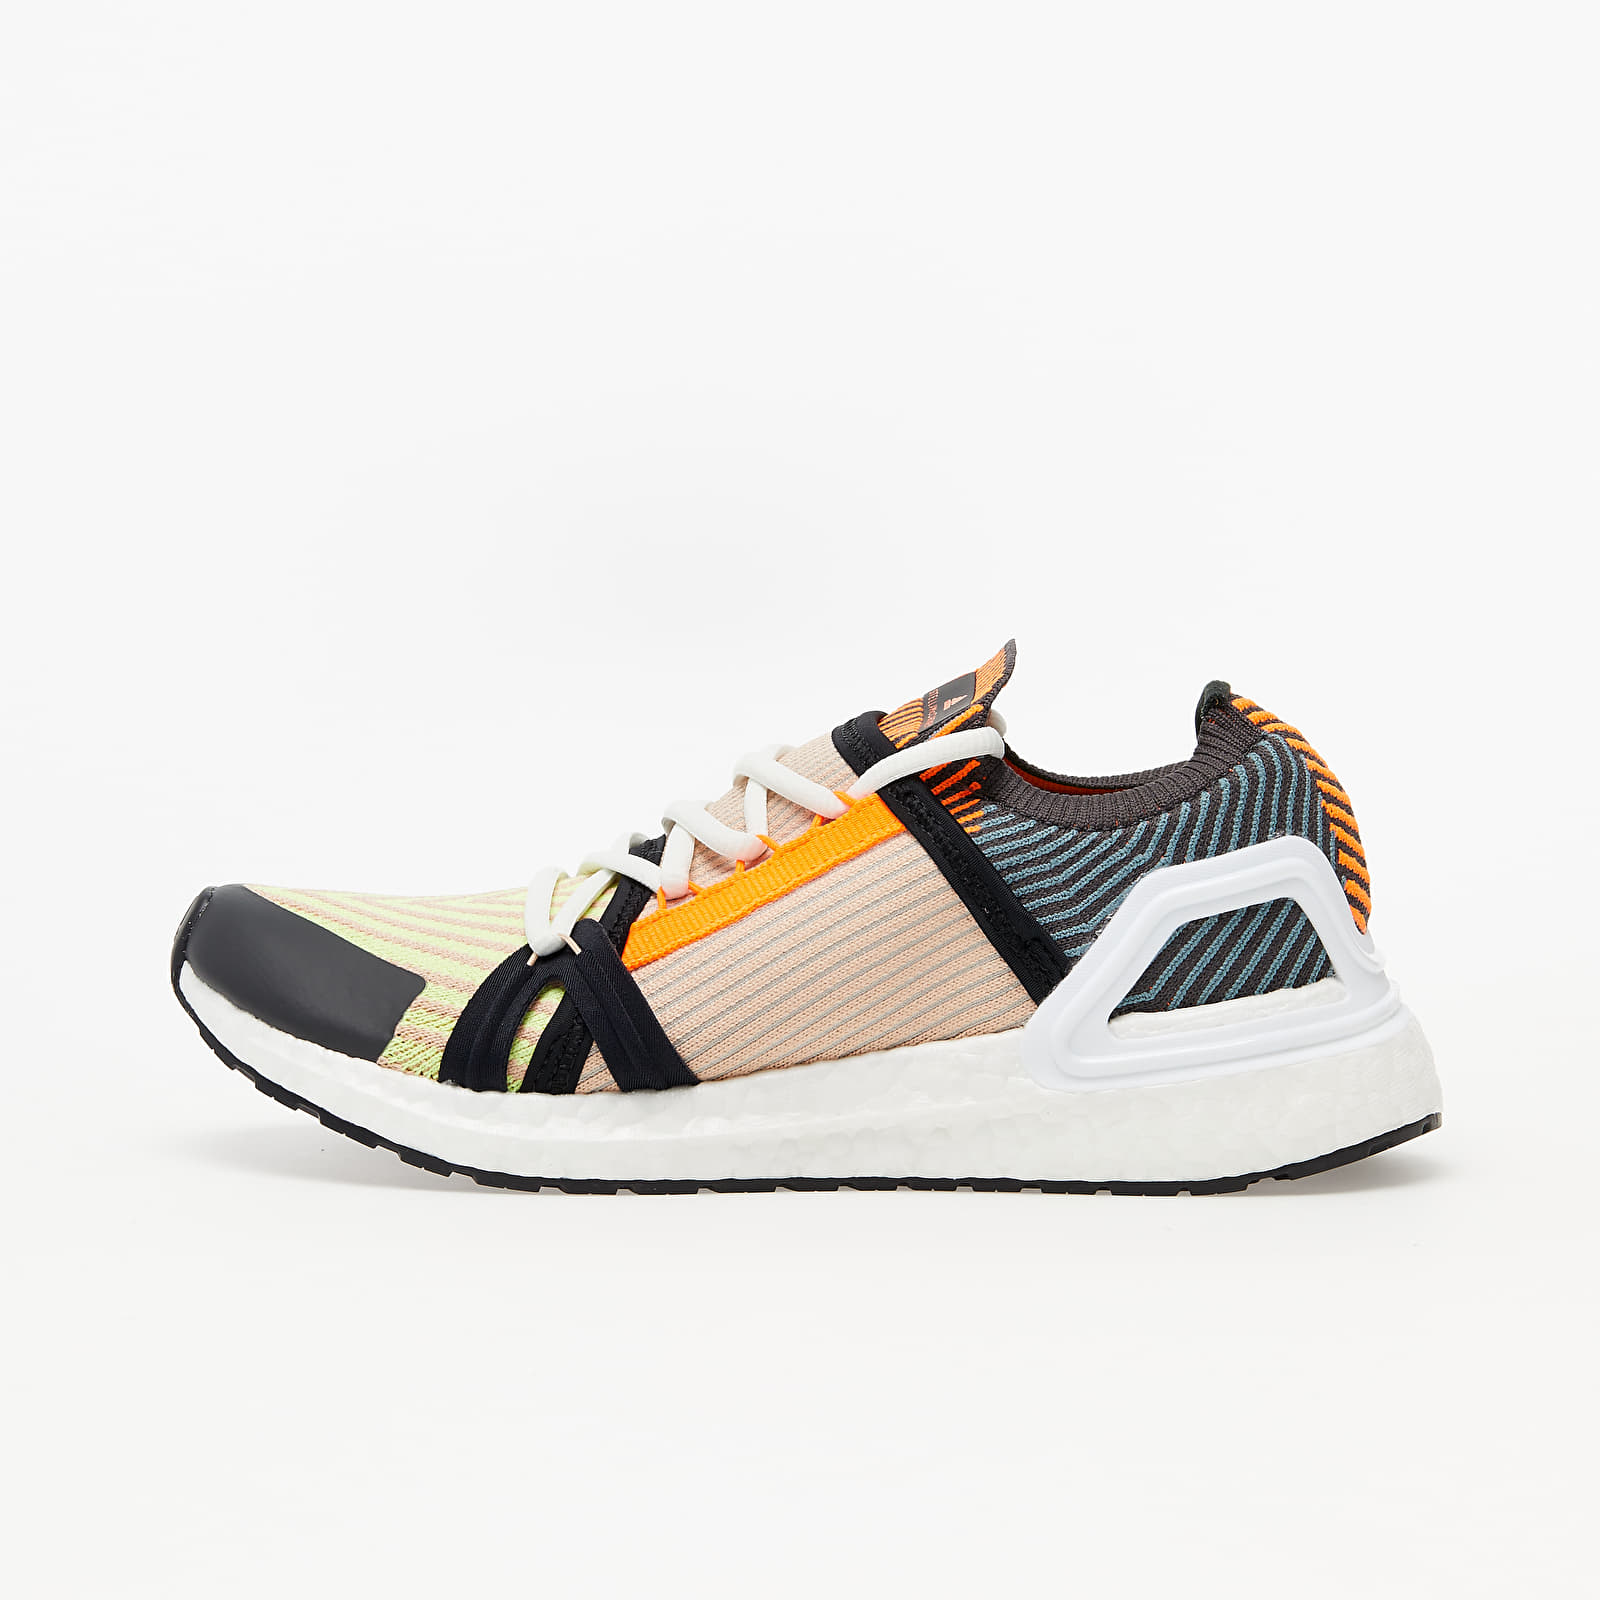 Dámské tenisky a boty adidas x Stella McCartney UltraBOOST 20 W Light Flash Yellow/ Soft Powder/ Utility Black